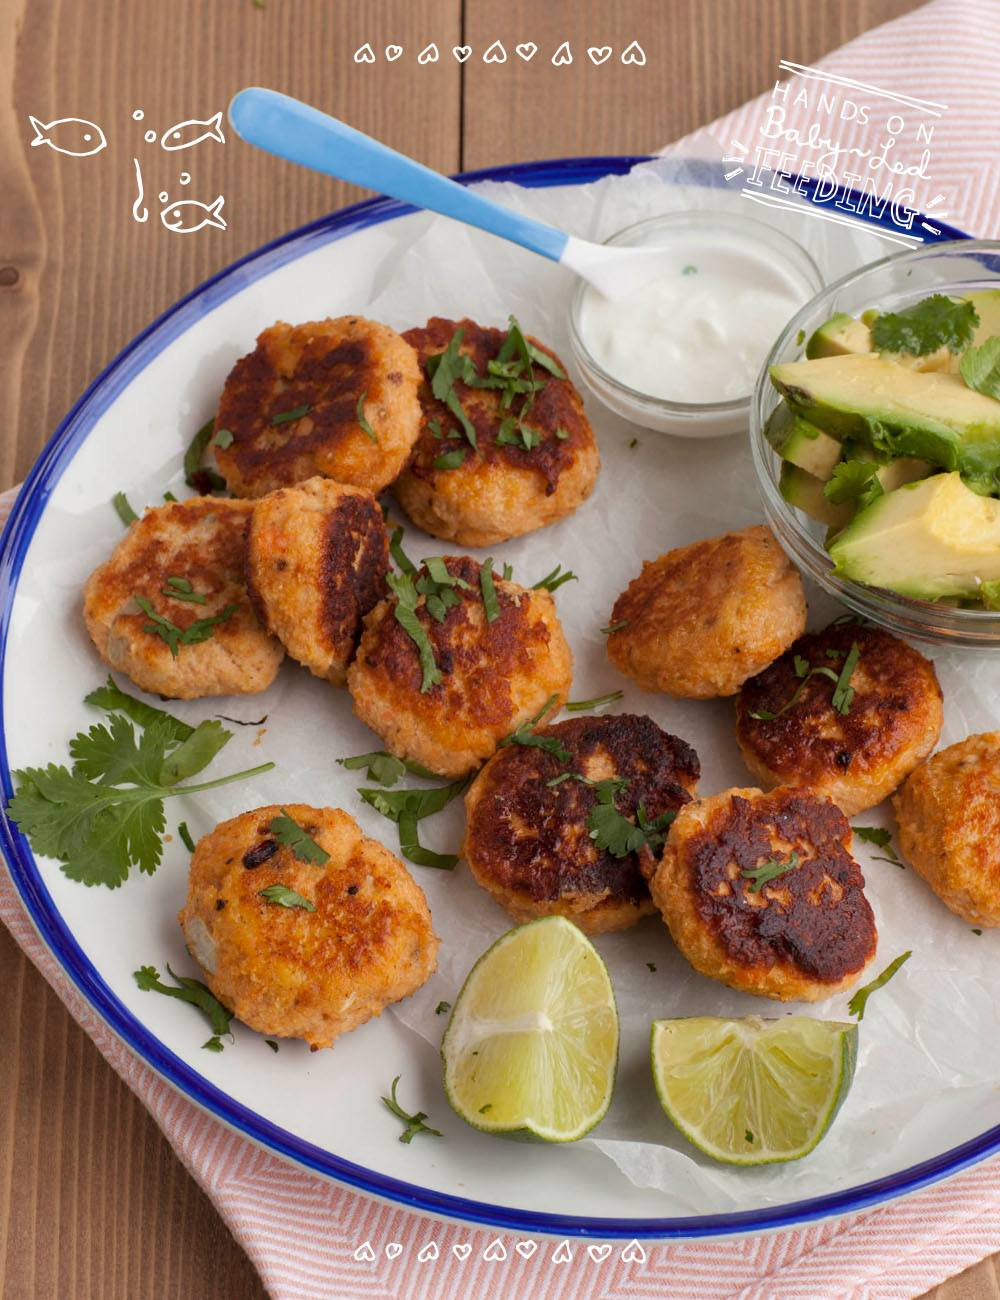 Baby led weaning fish cakes with avocado and mint yogurt dip. This is a perfect baby lunch recipe packed with Omega-3 rich fish and full of vitamins. Lunch ideas for baby led weaning. BLW lunch recipe.